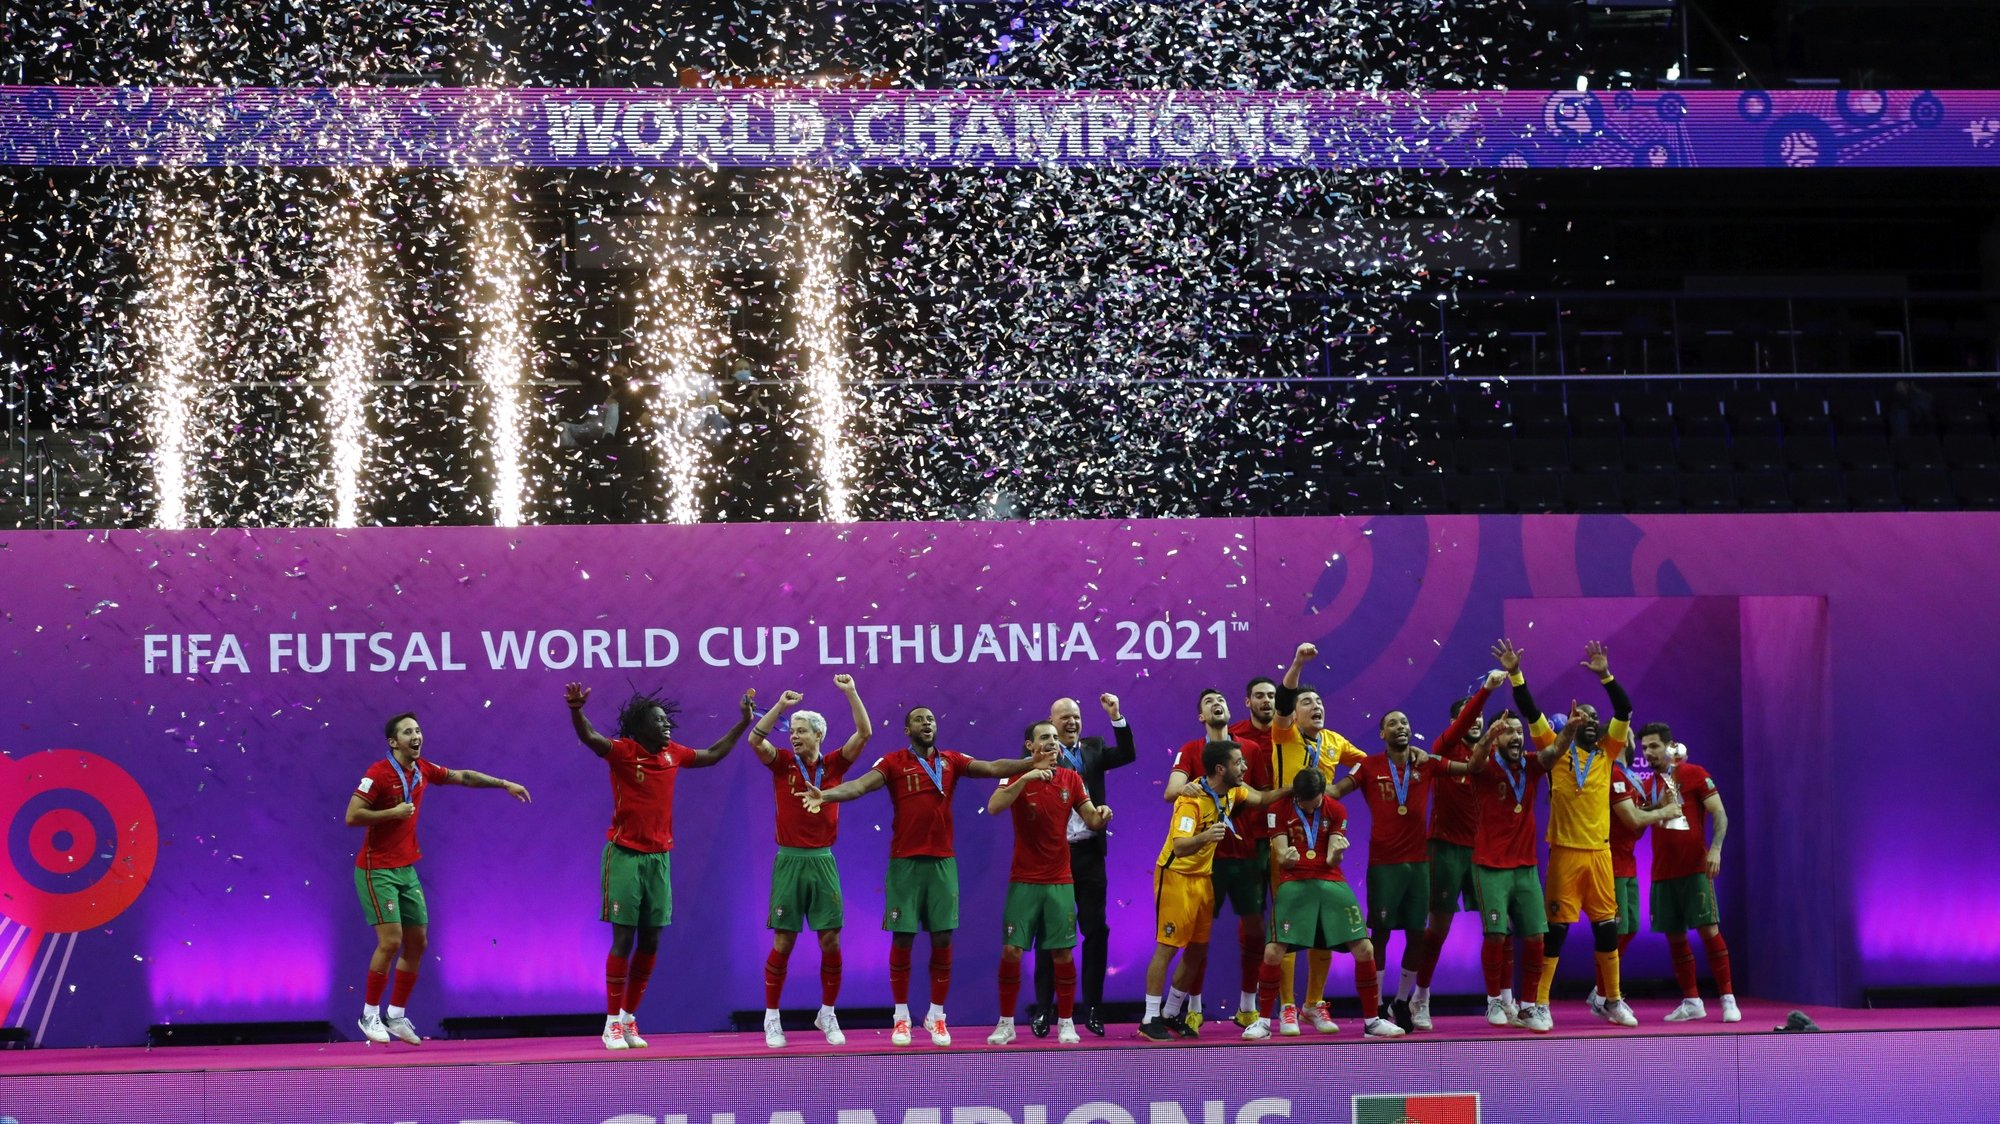 epa09504591 Players of Portugal celebrate during the award ceremony after winning the FIFA Futsal World Cup Lithuania 2021 final between Argentina and Portugal in Kaunas, Lithuania, 03 October 2021.  EPA/TOMS KALNINS